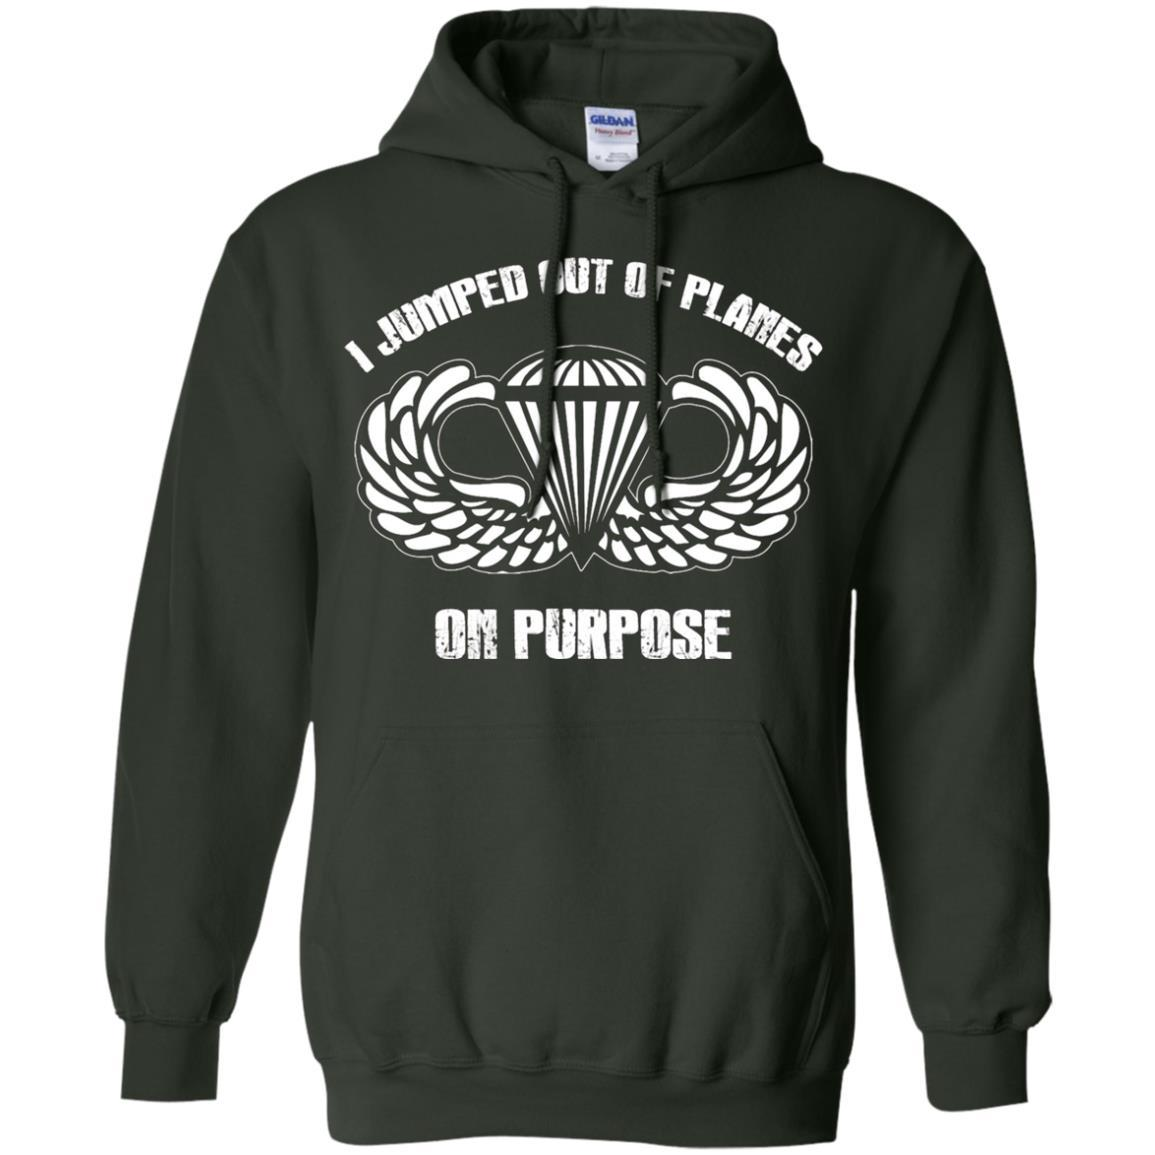 I jumped out of planes on purpose, Airborne - Pullover Hoodie Forest Green / 5XL